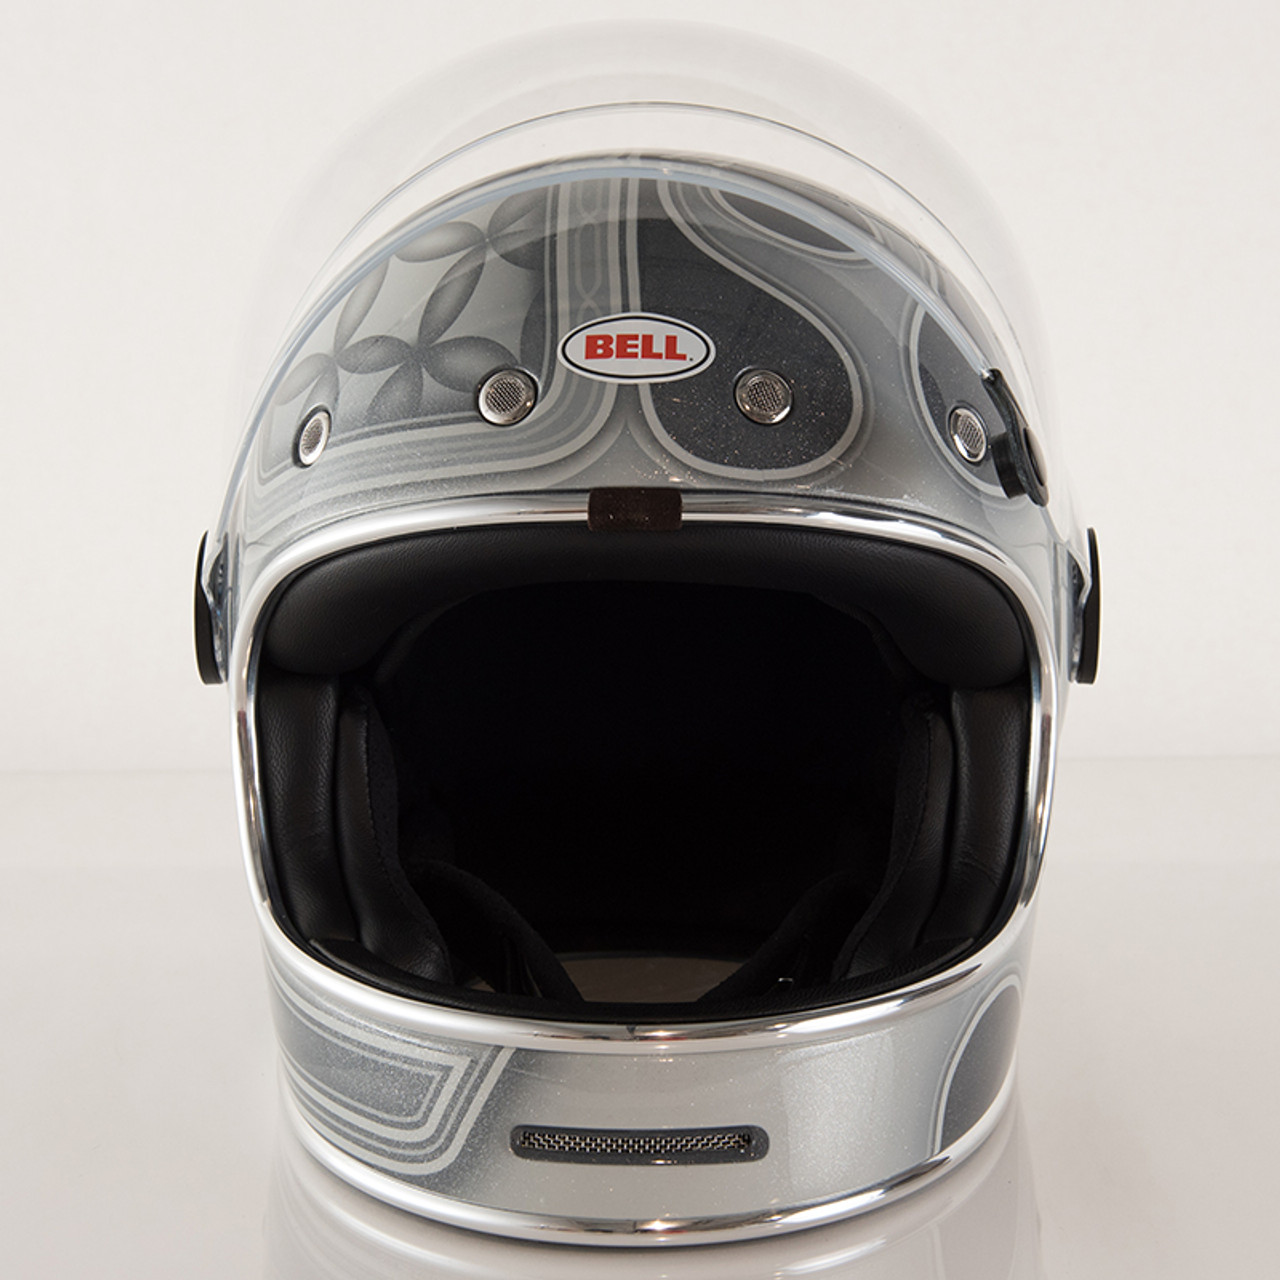 Bell Bullitt Special Edition SE Chemical Candy Grey Helmet